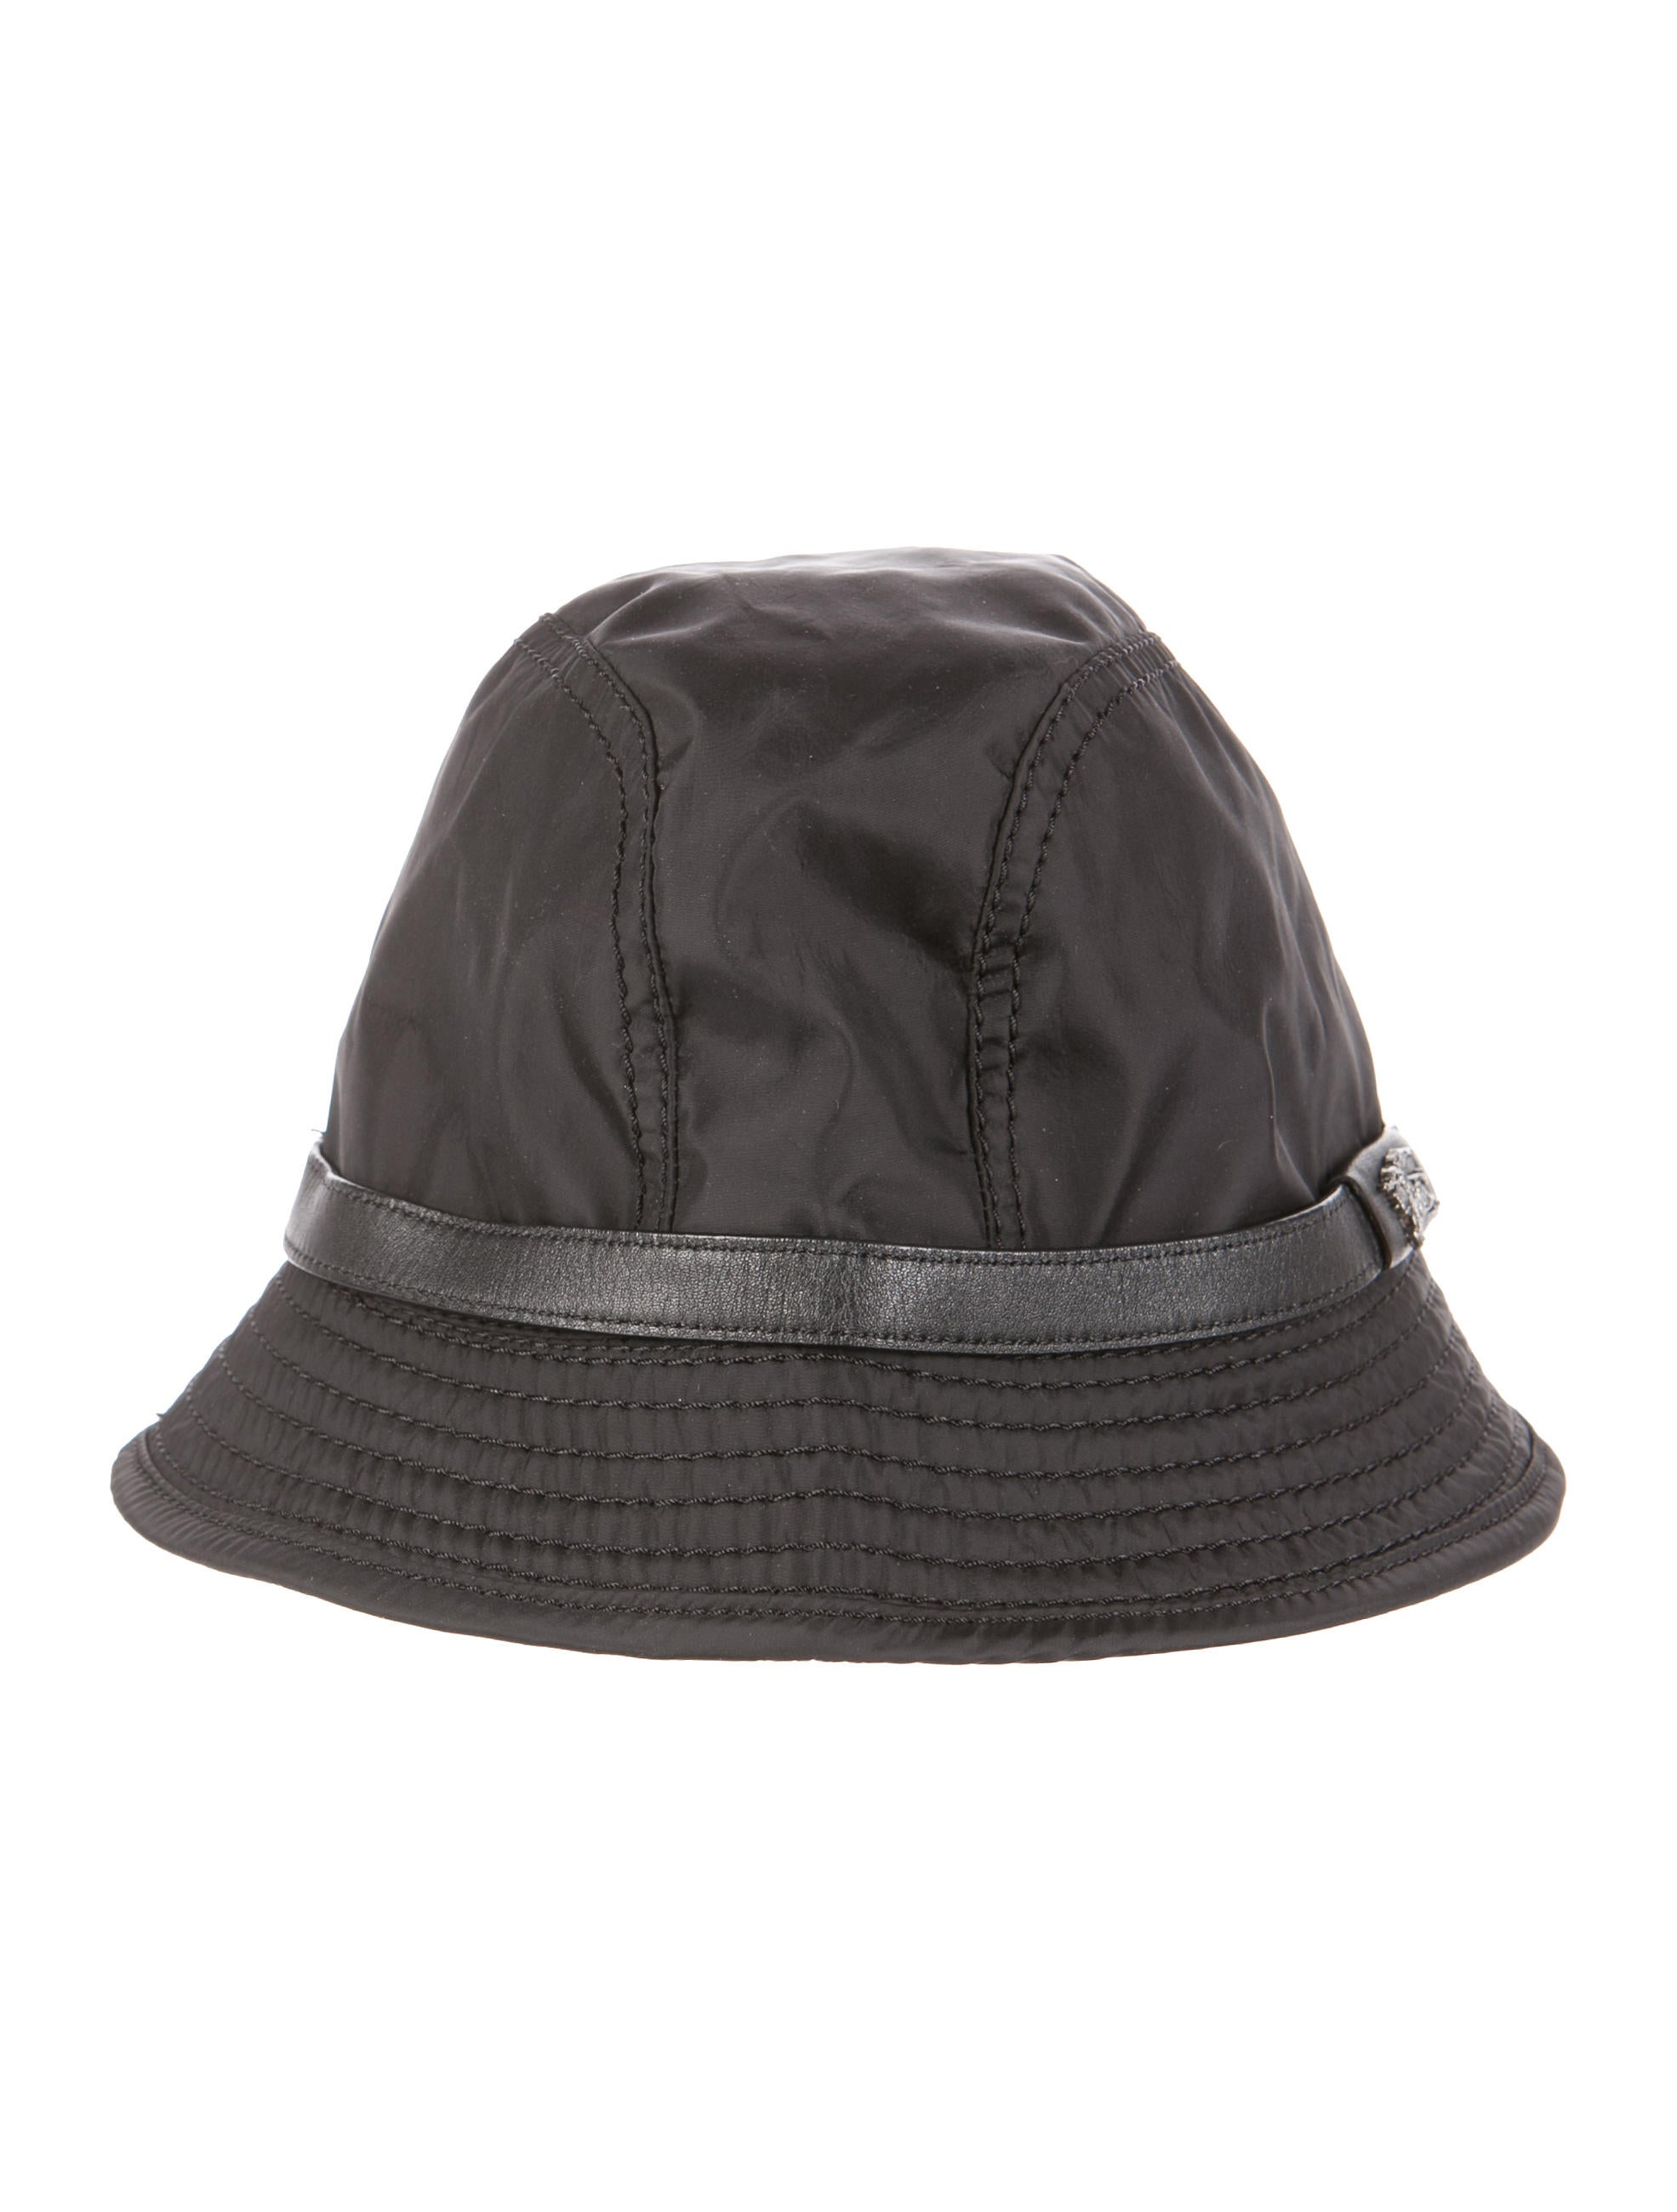 burberry hat accessories bur48793 the realreal